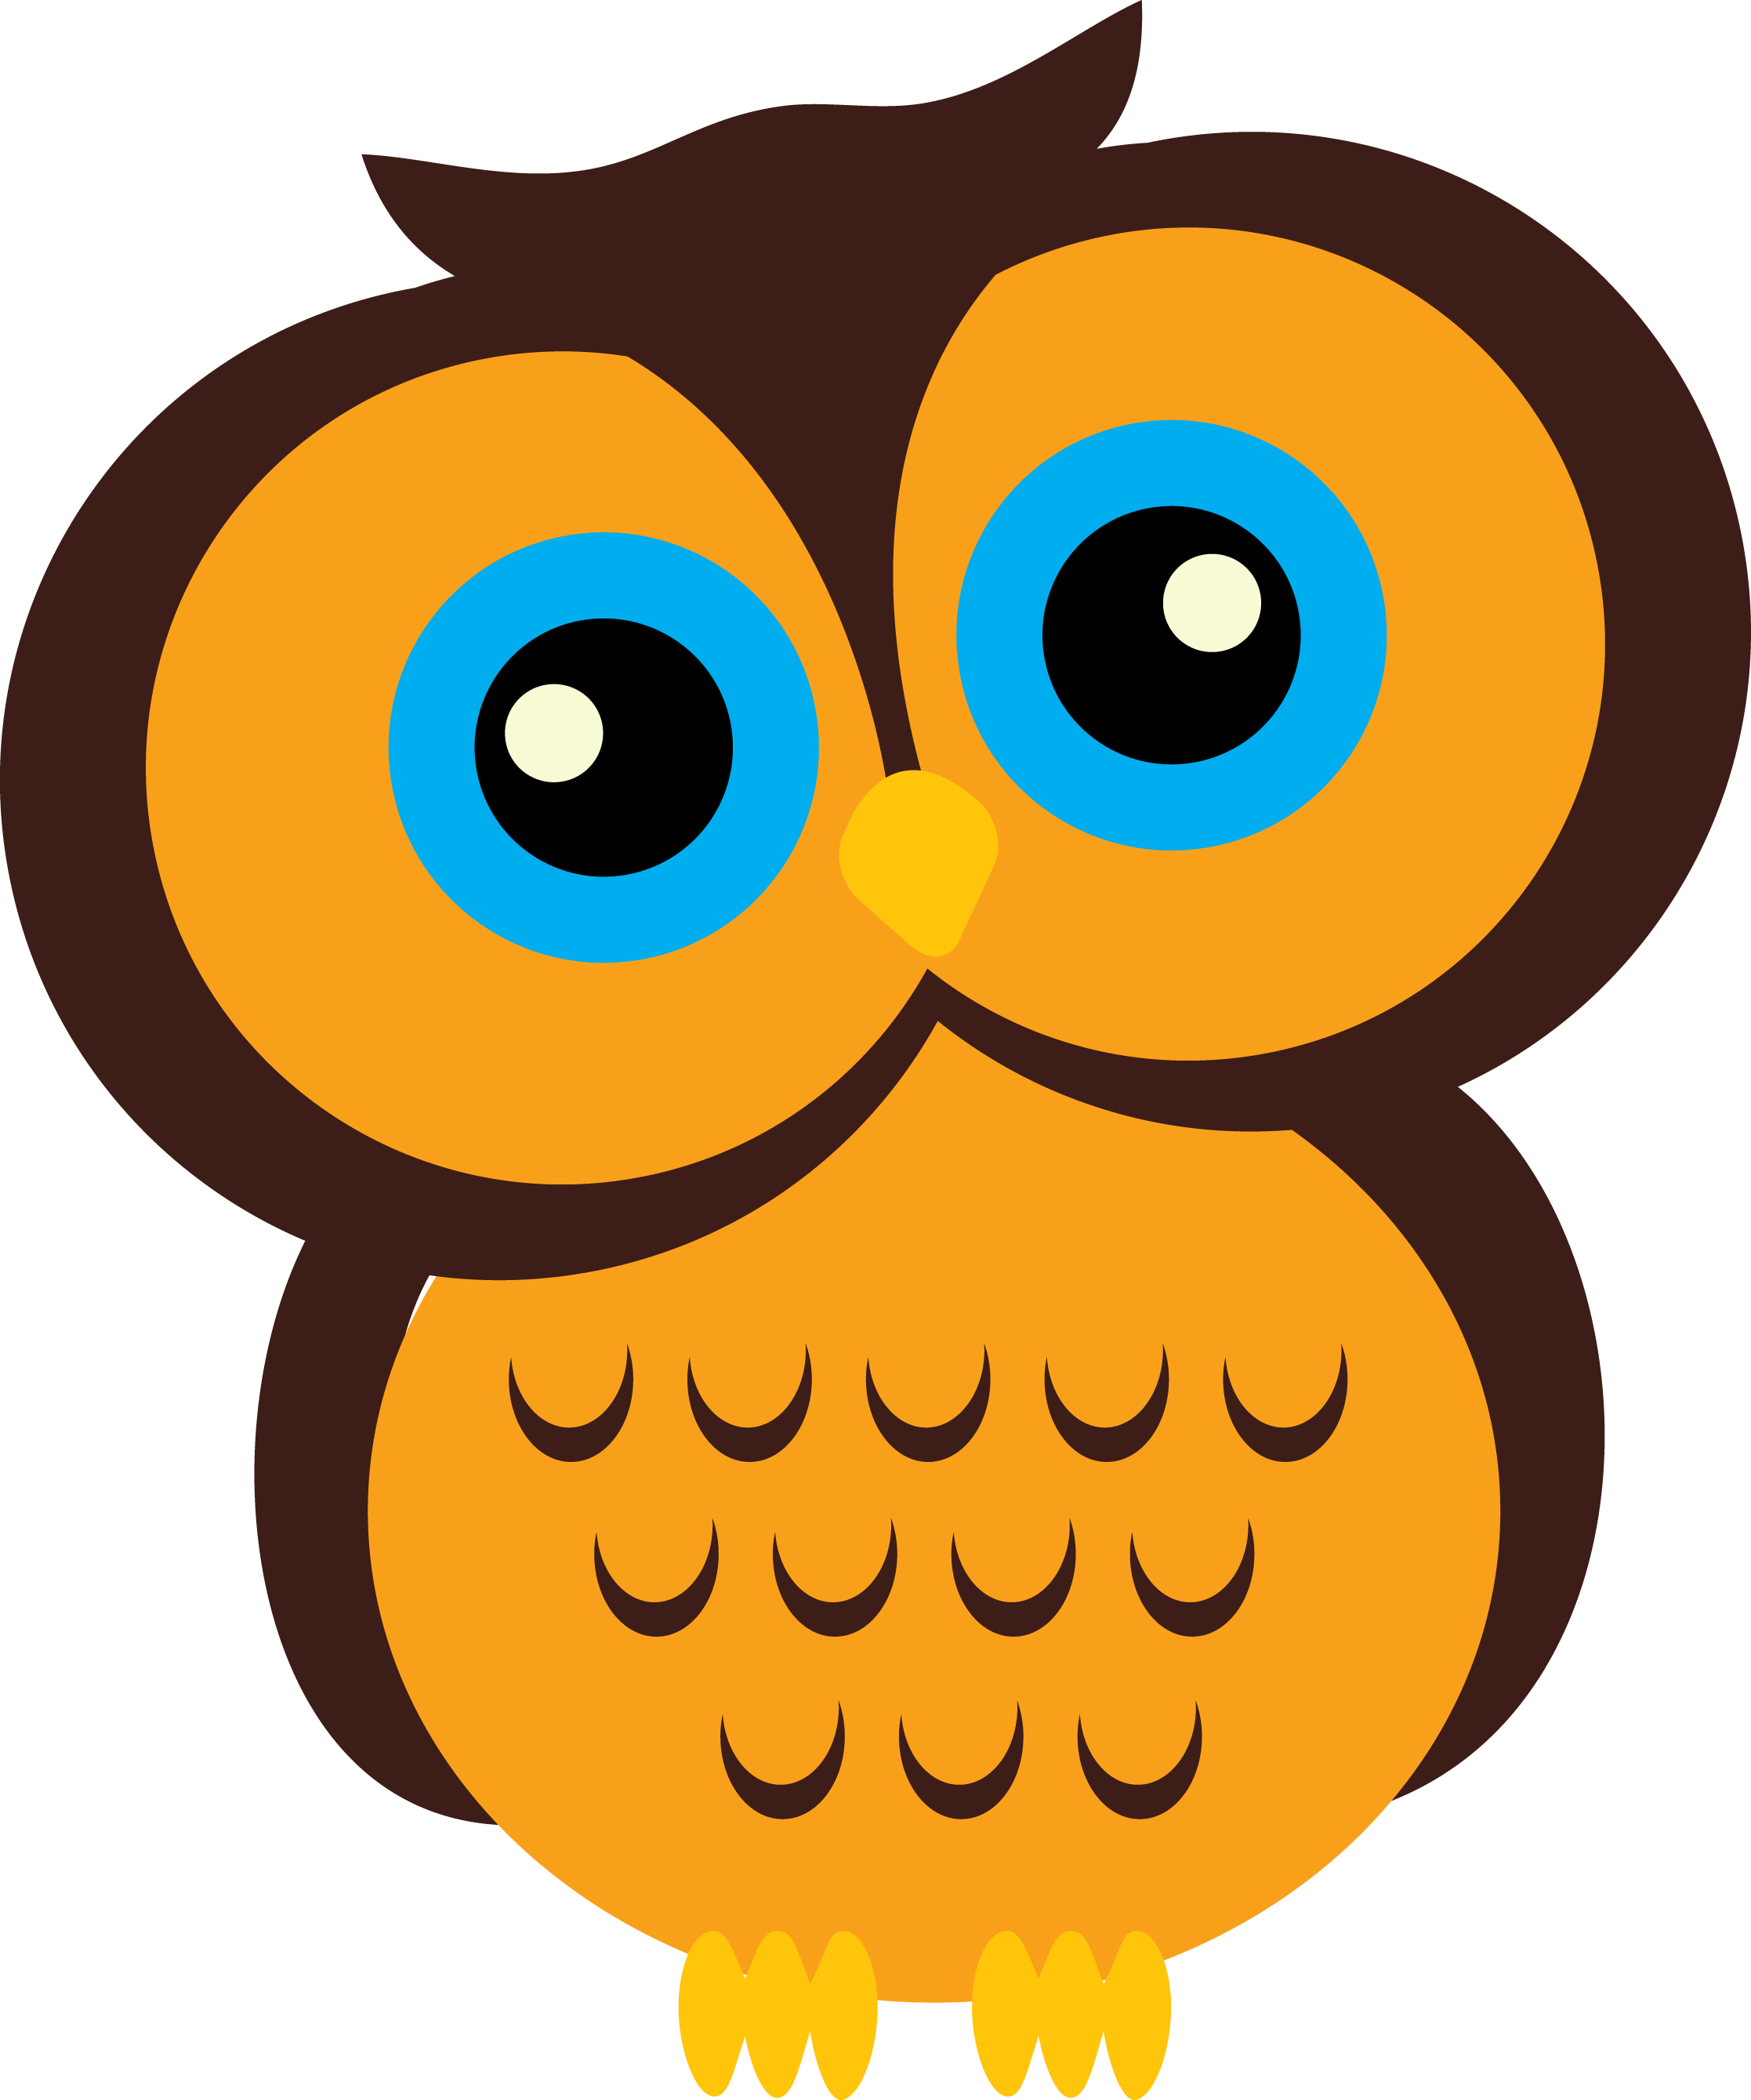 Foot clipart owl. Photo by daniellemoraesfalcao minus